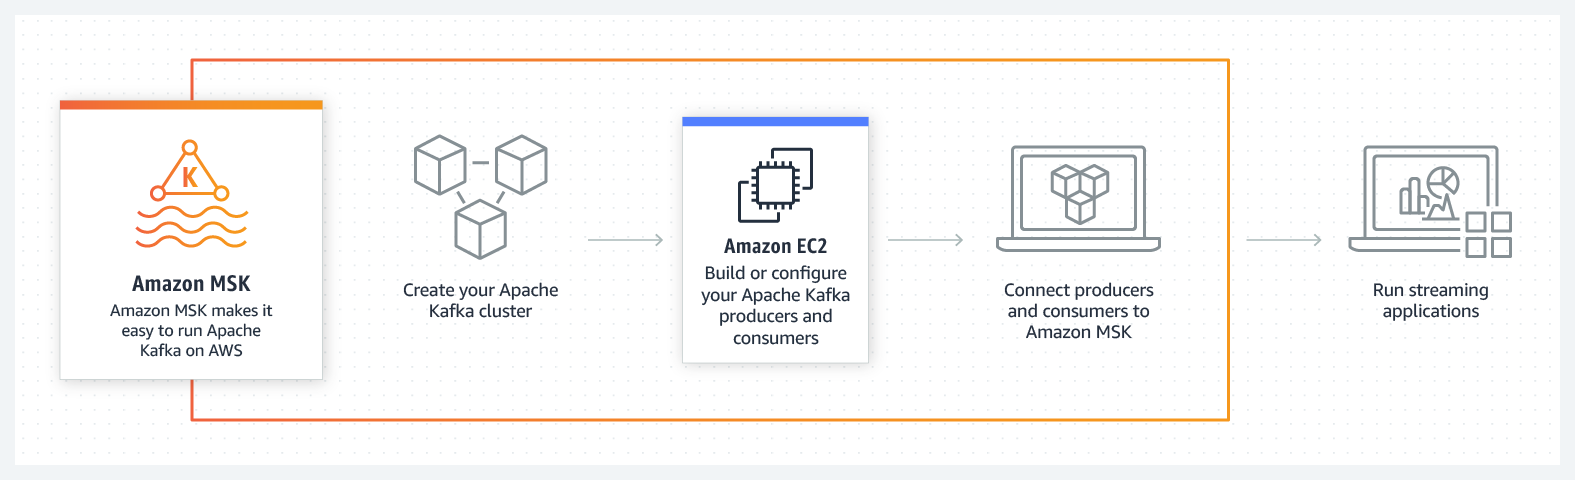 Amazon MSK how it works diagram